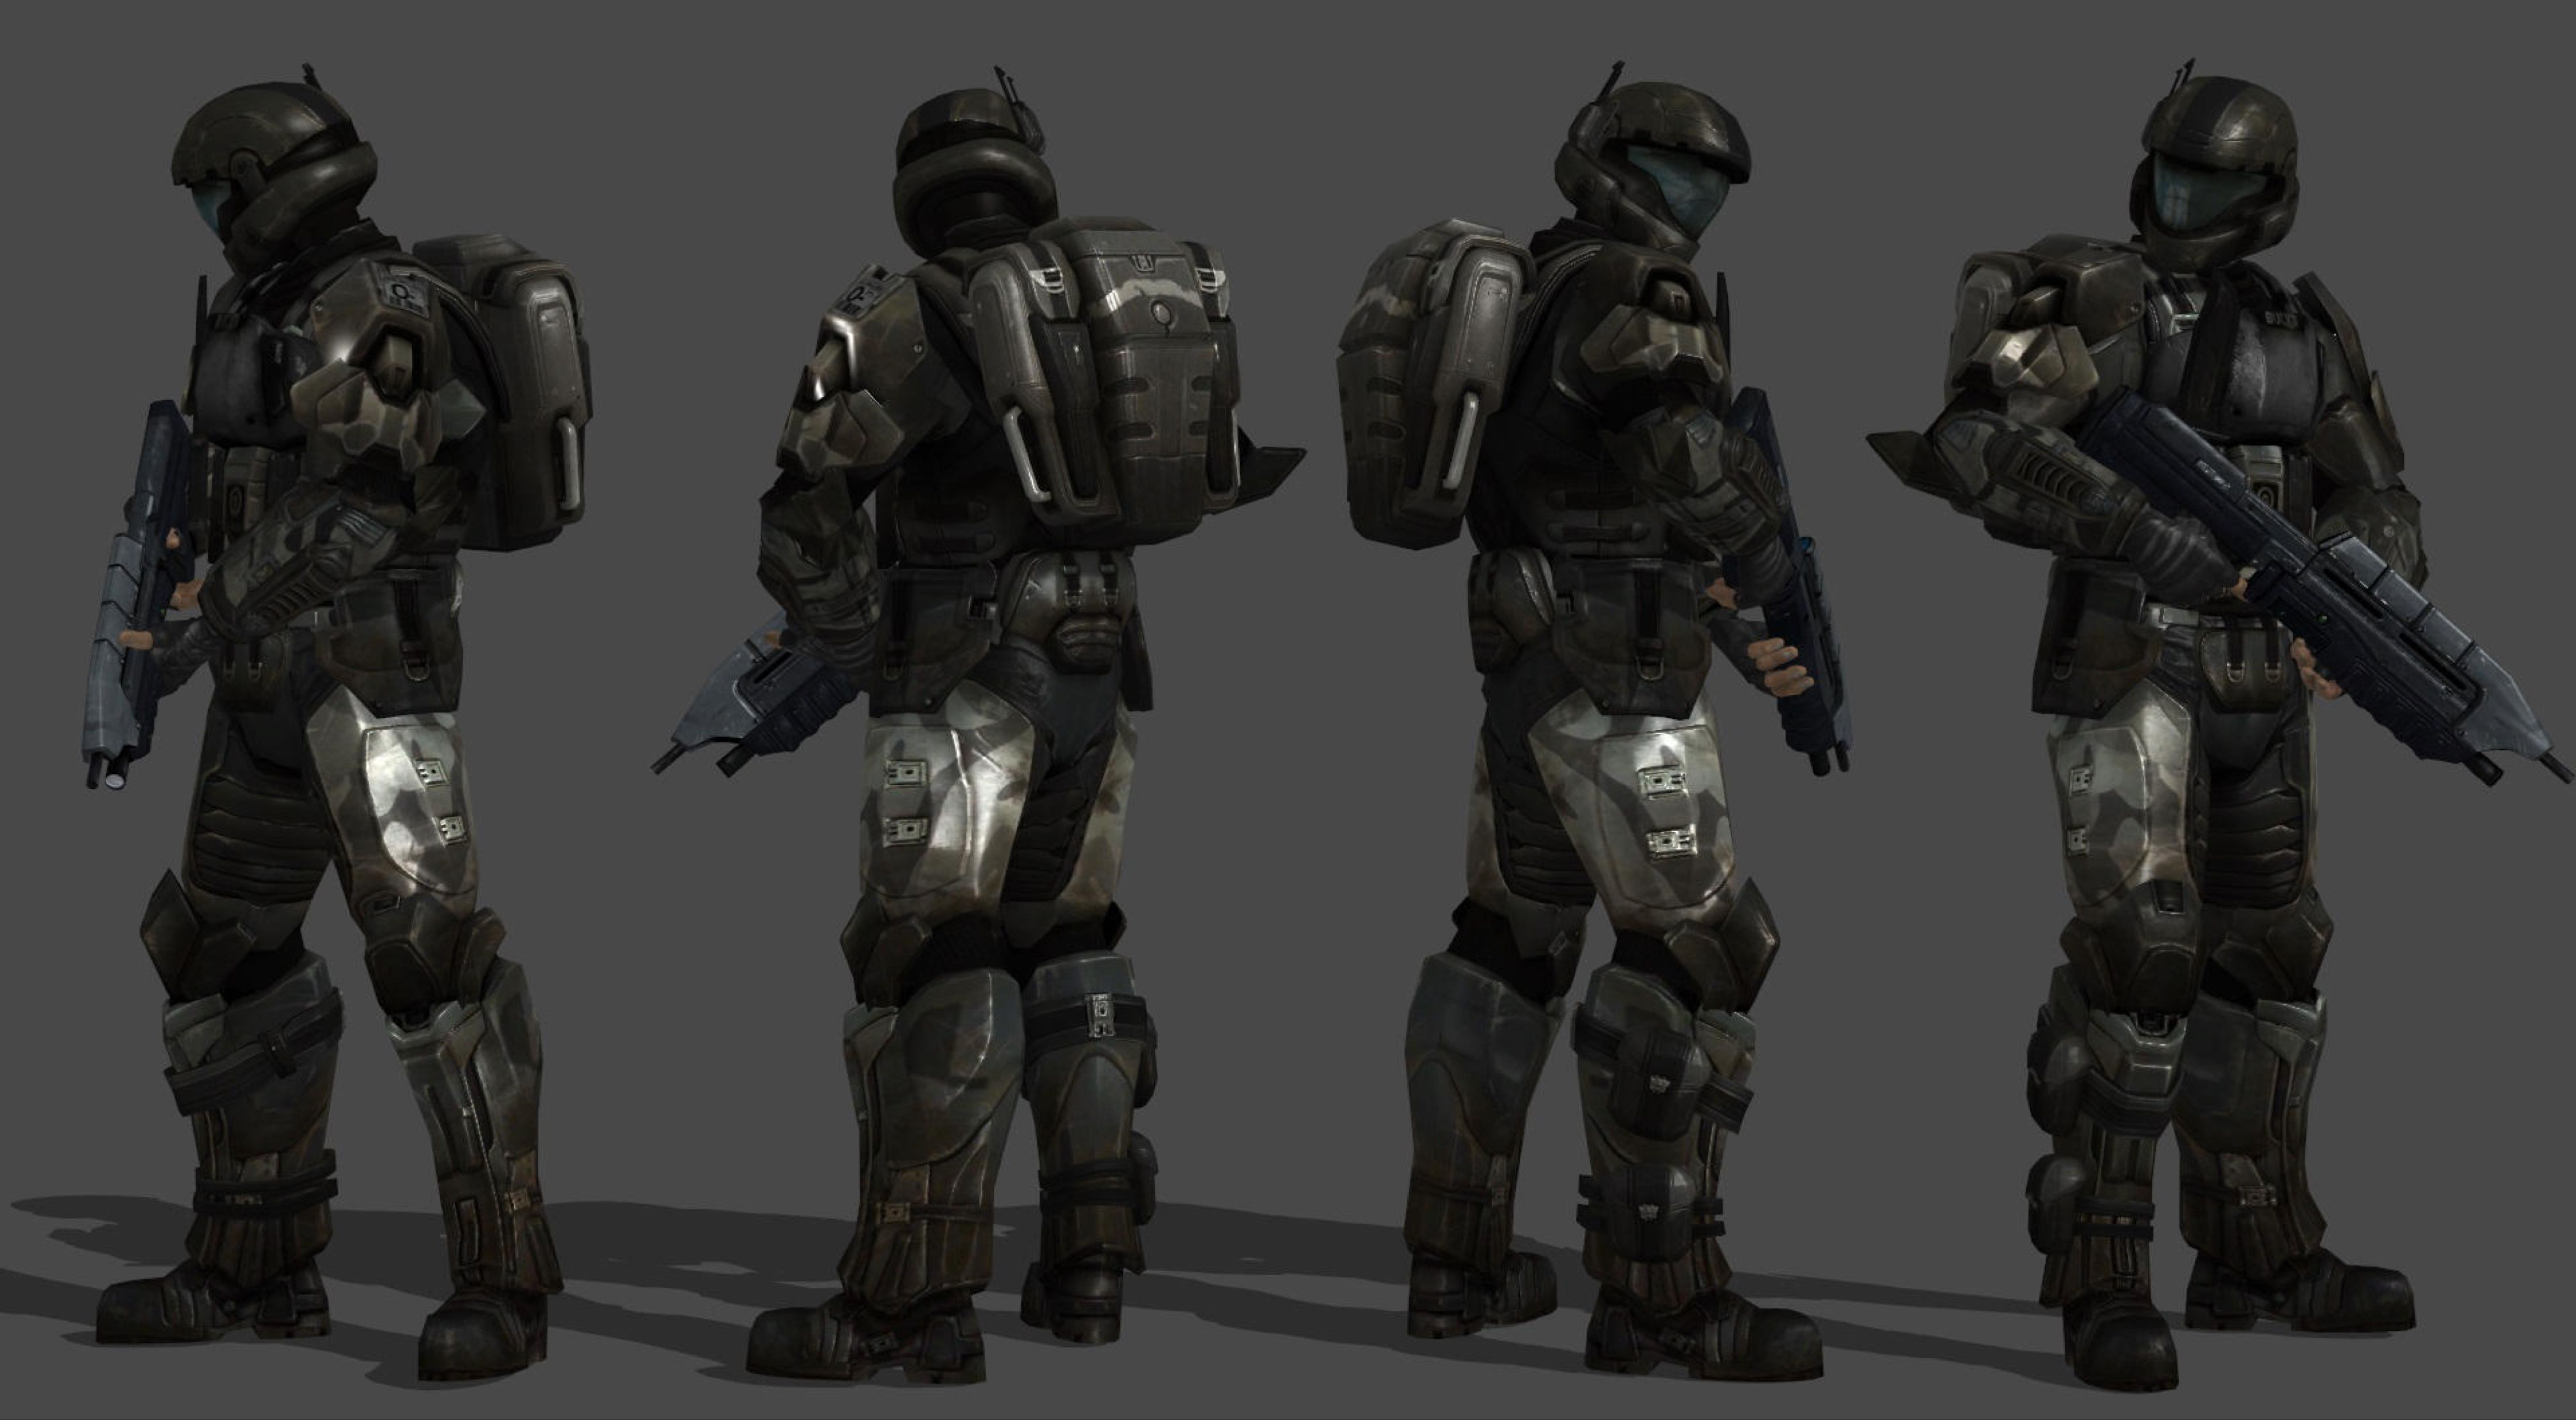 WIP - Halo ODST: Buck 3D model by ShaunsArtHouse on @DeviantArt